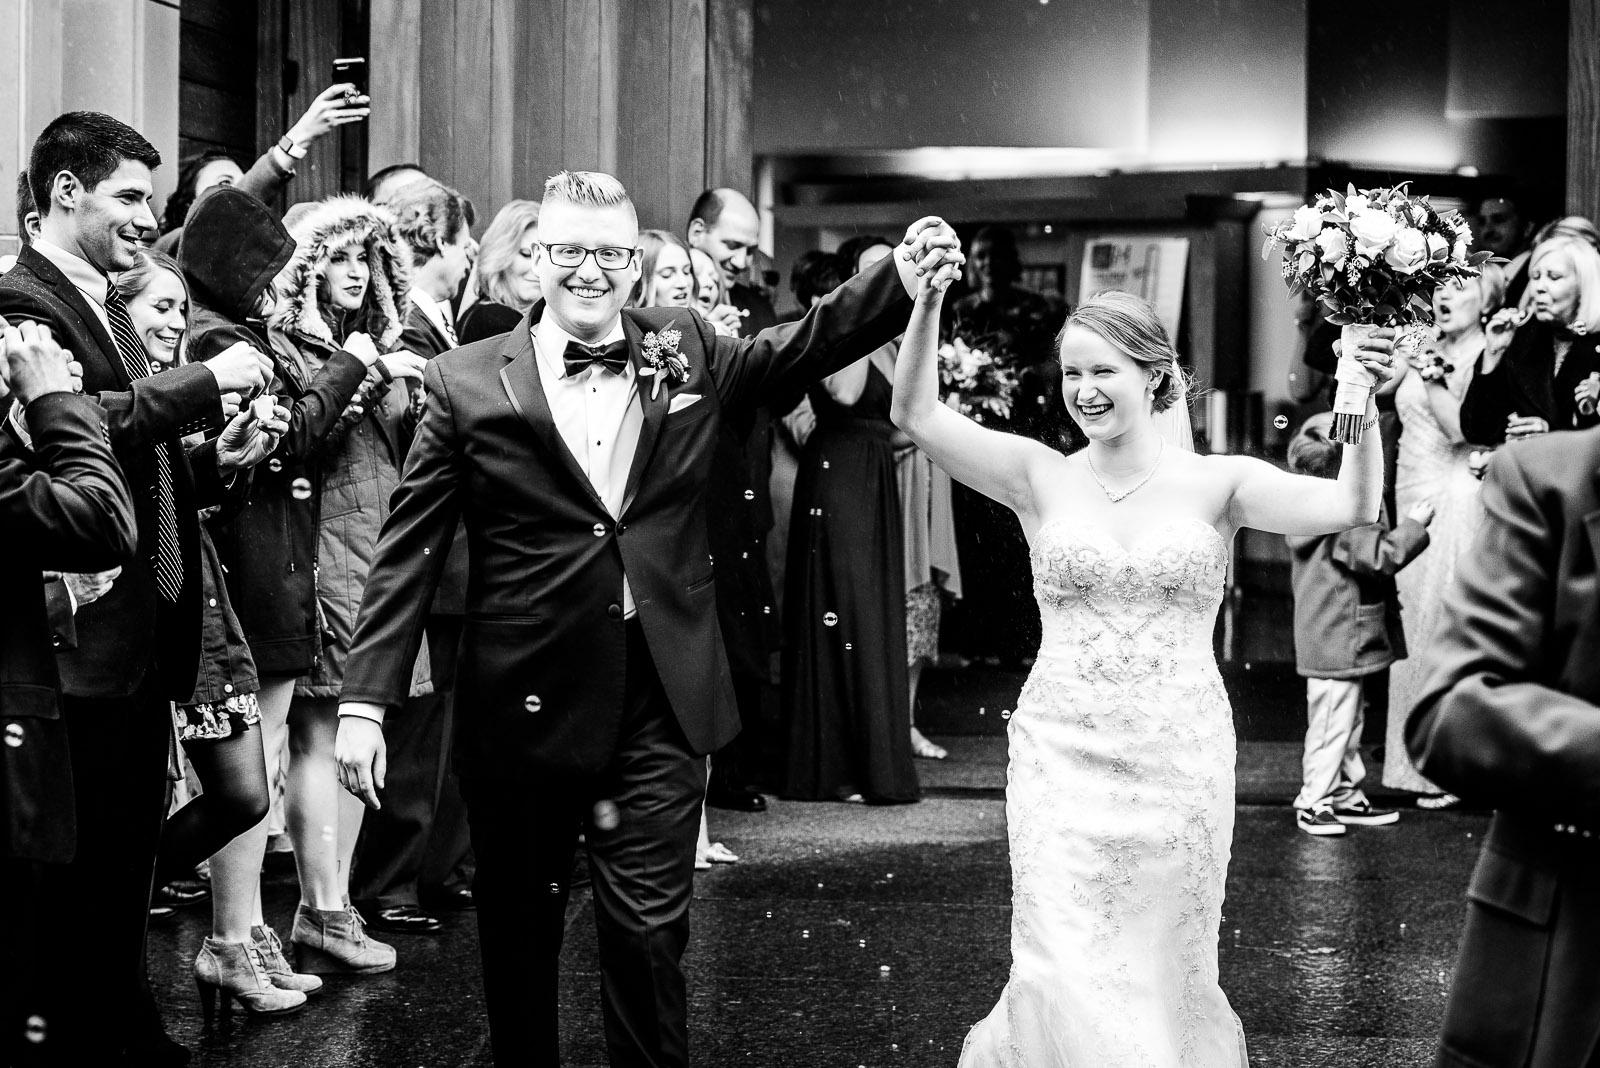 Eric_and_Christy_Photography_Blog_Wedding_Erica_Mike-18